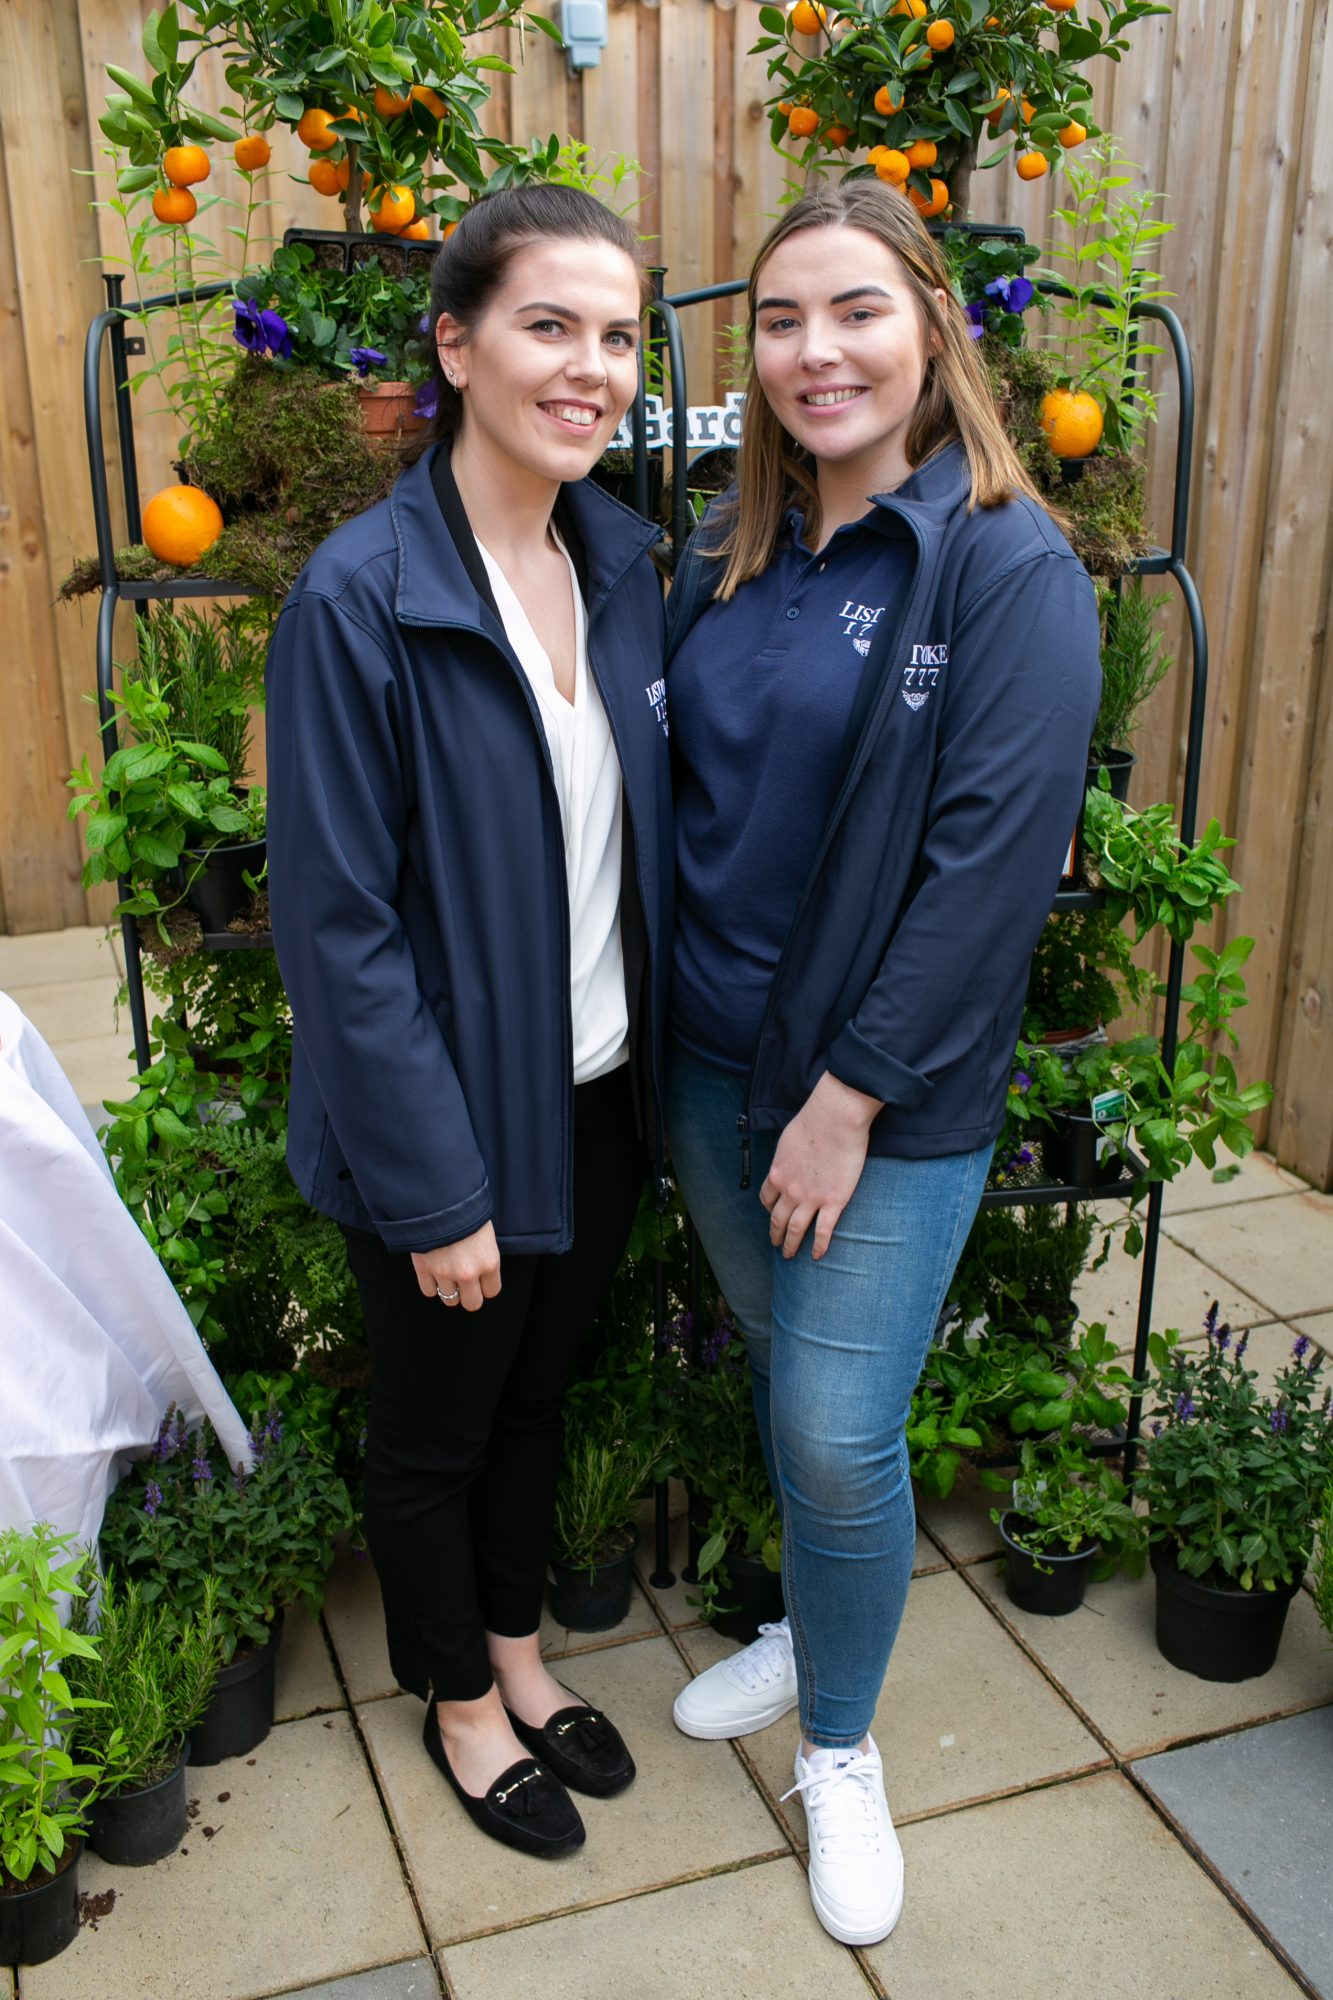 Emma Markey and Grainne McAvinchey pictured at the SuperValu Gin Garden held at Opium Rooftop Garden, Dublin.